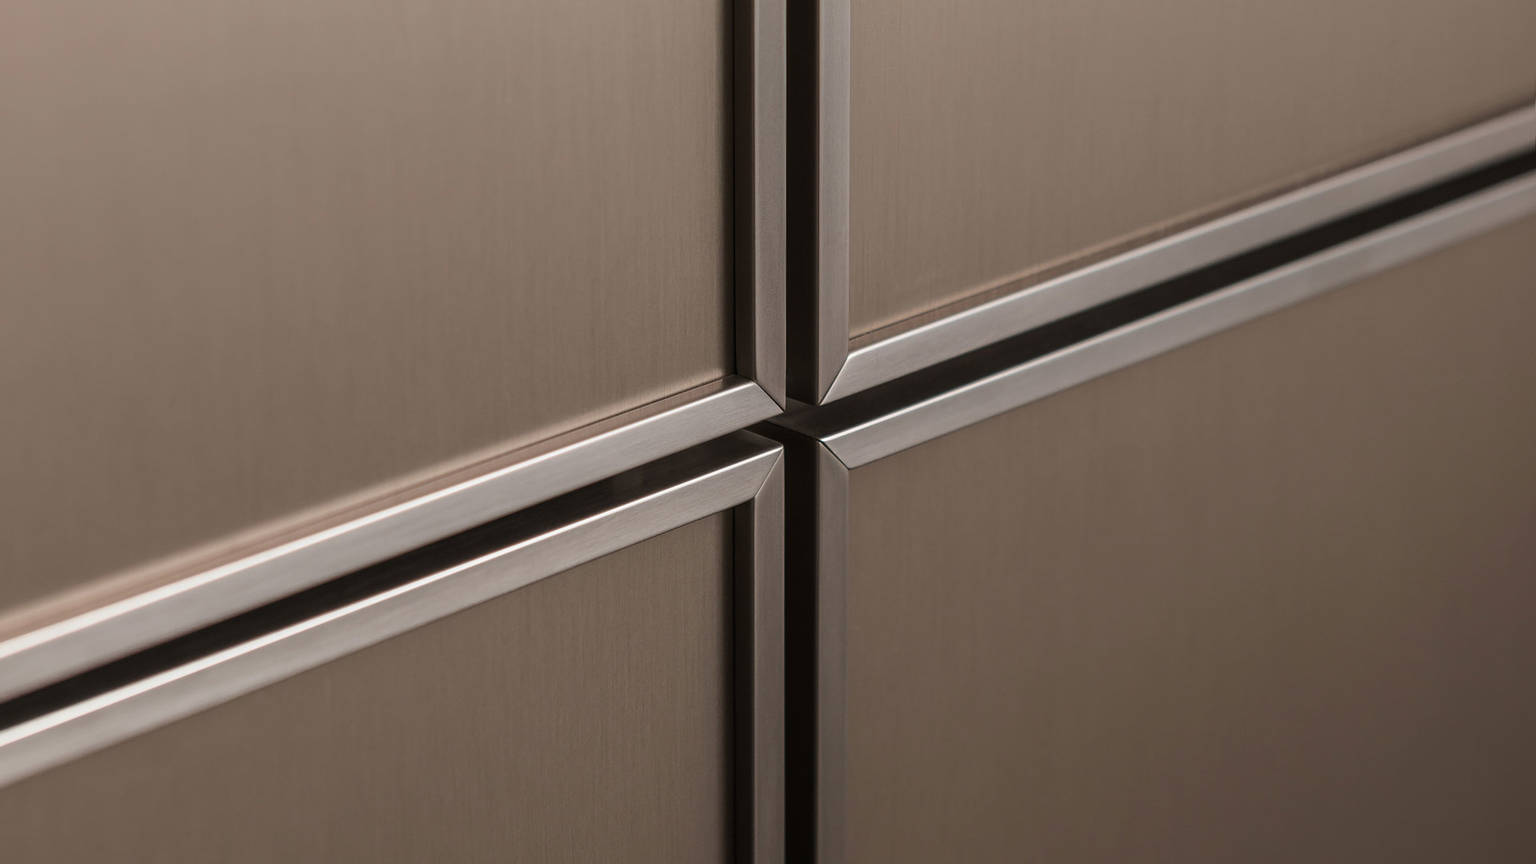 SieMatic Pure SE 3003 R kitchen with 6.5 mm narrow door front edging in gently shimmering gold bronze